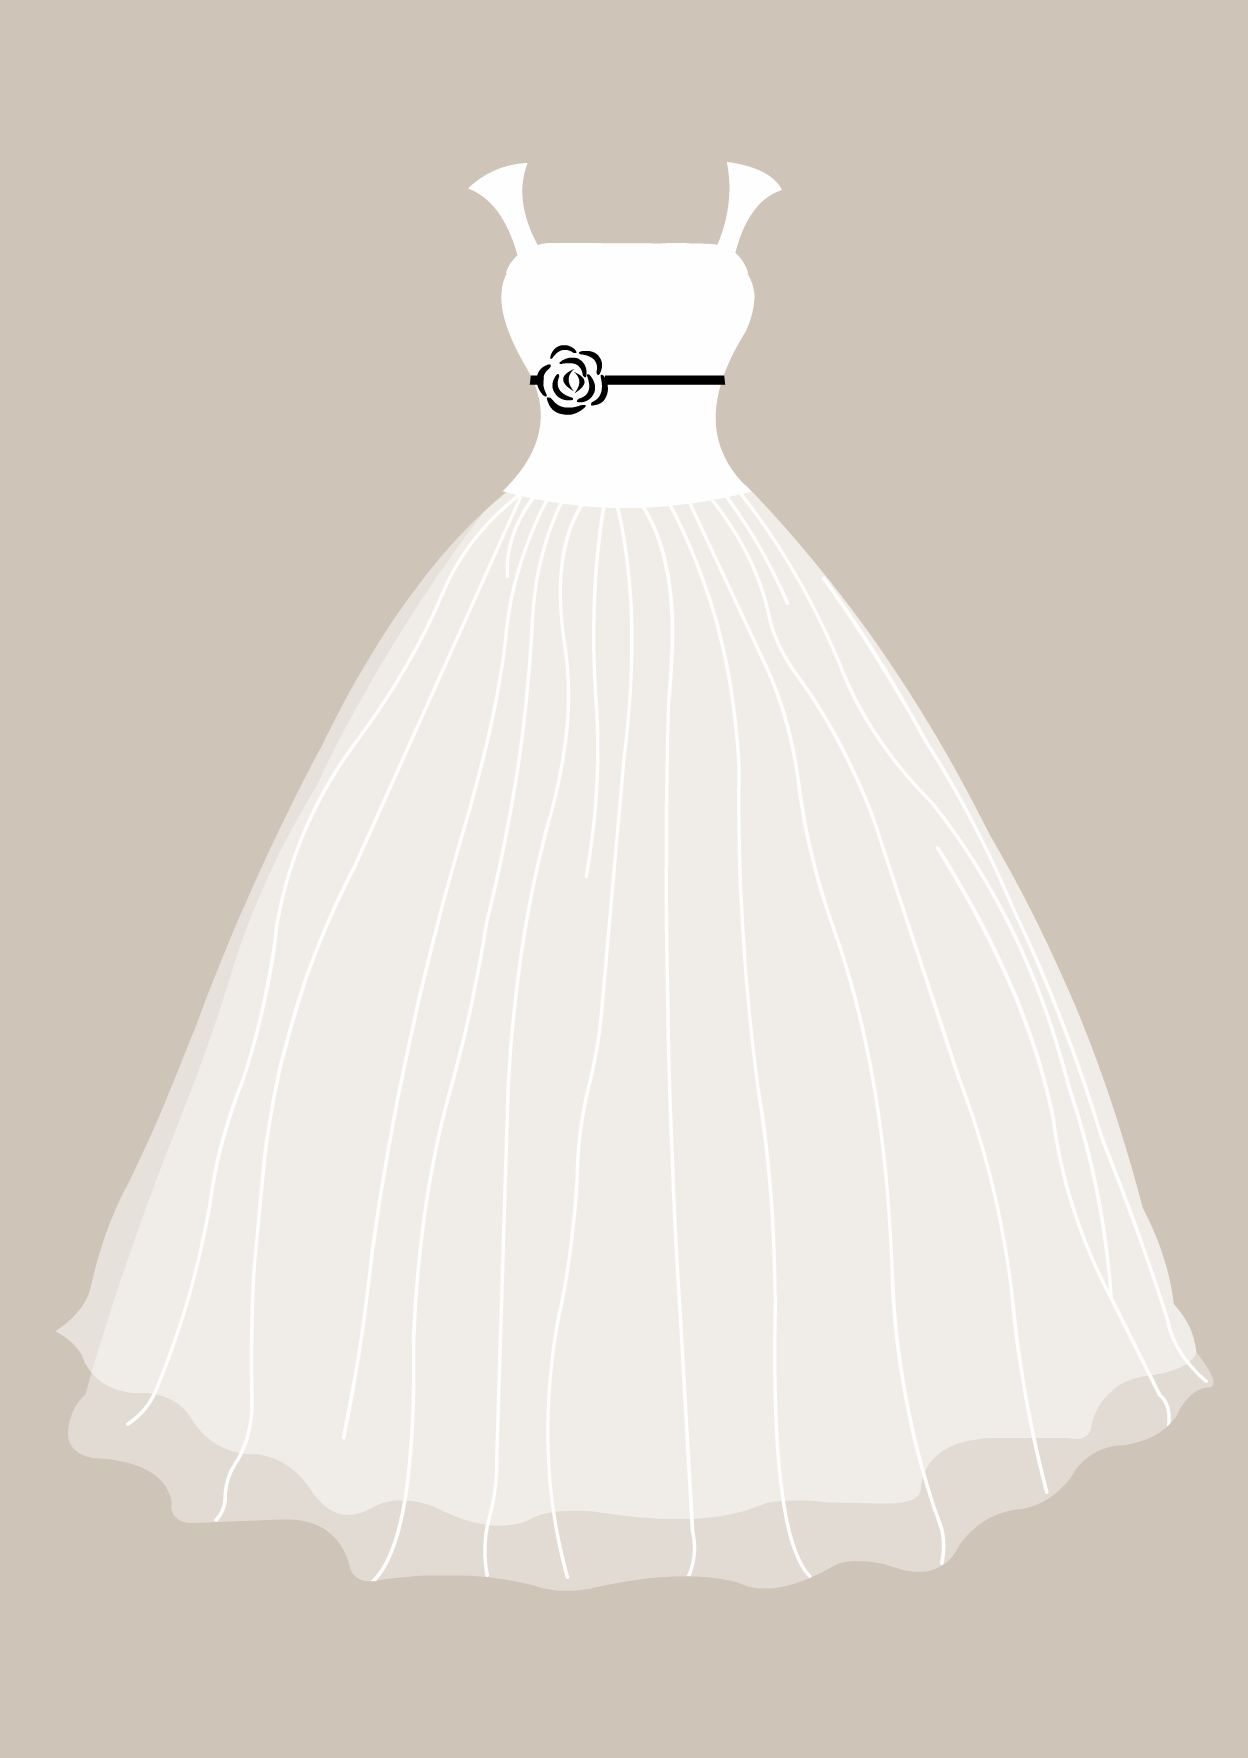 wedding gown clipart free - photo #12